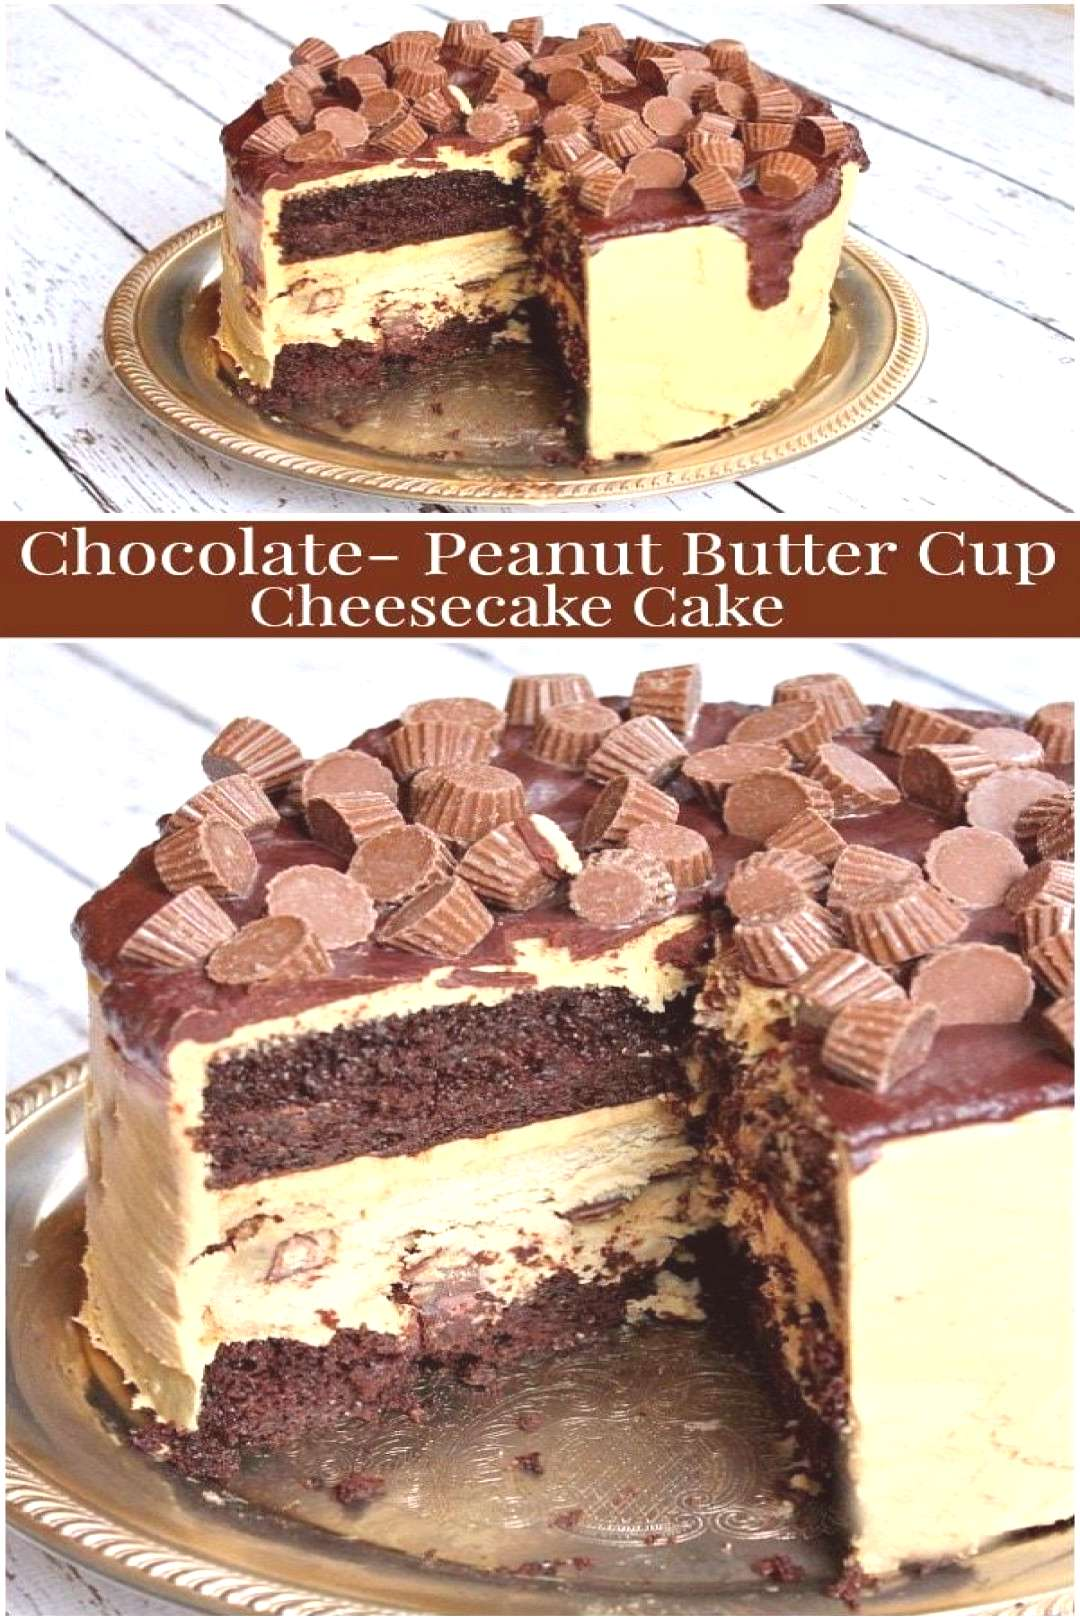 Chocolate Peanut Butter Cup Cheesecake Cake recipe from